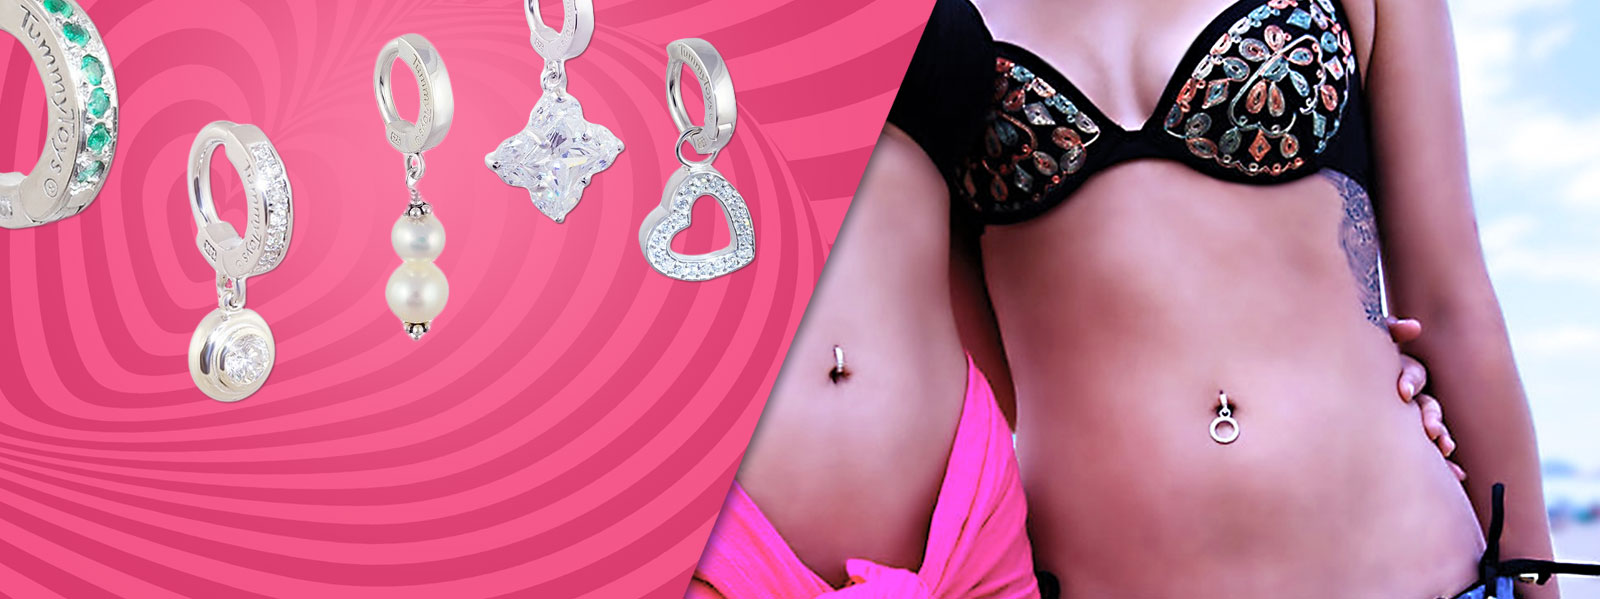 Belly Rings Australia by TummyToys Trusted Brand